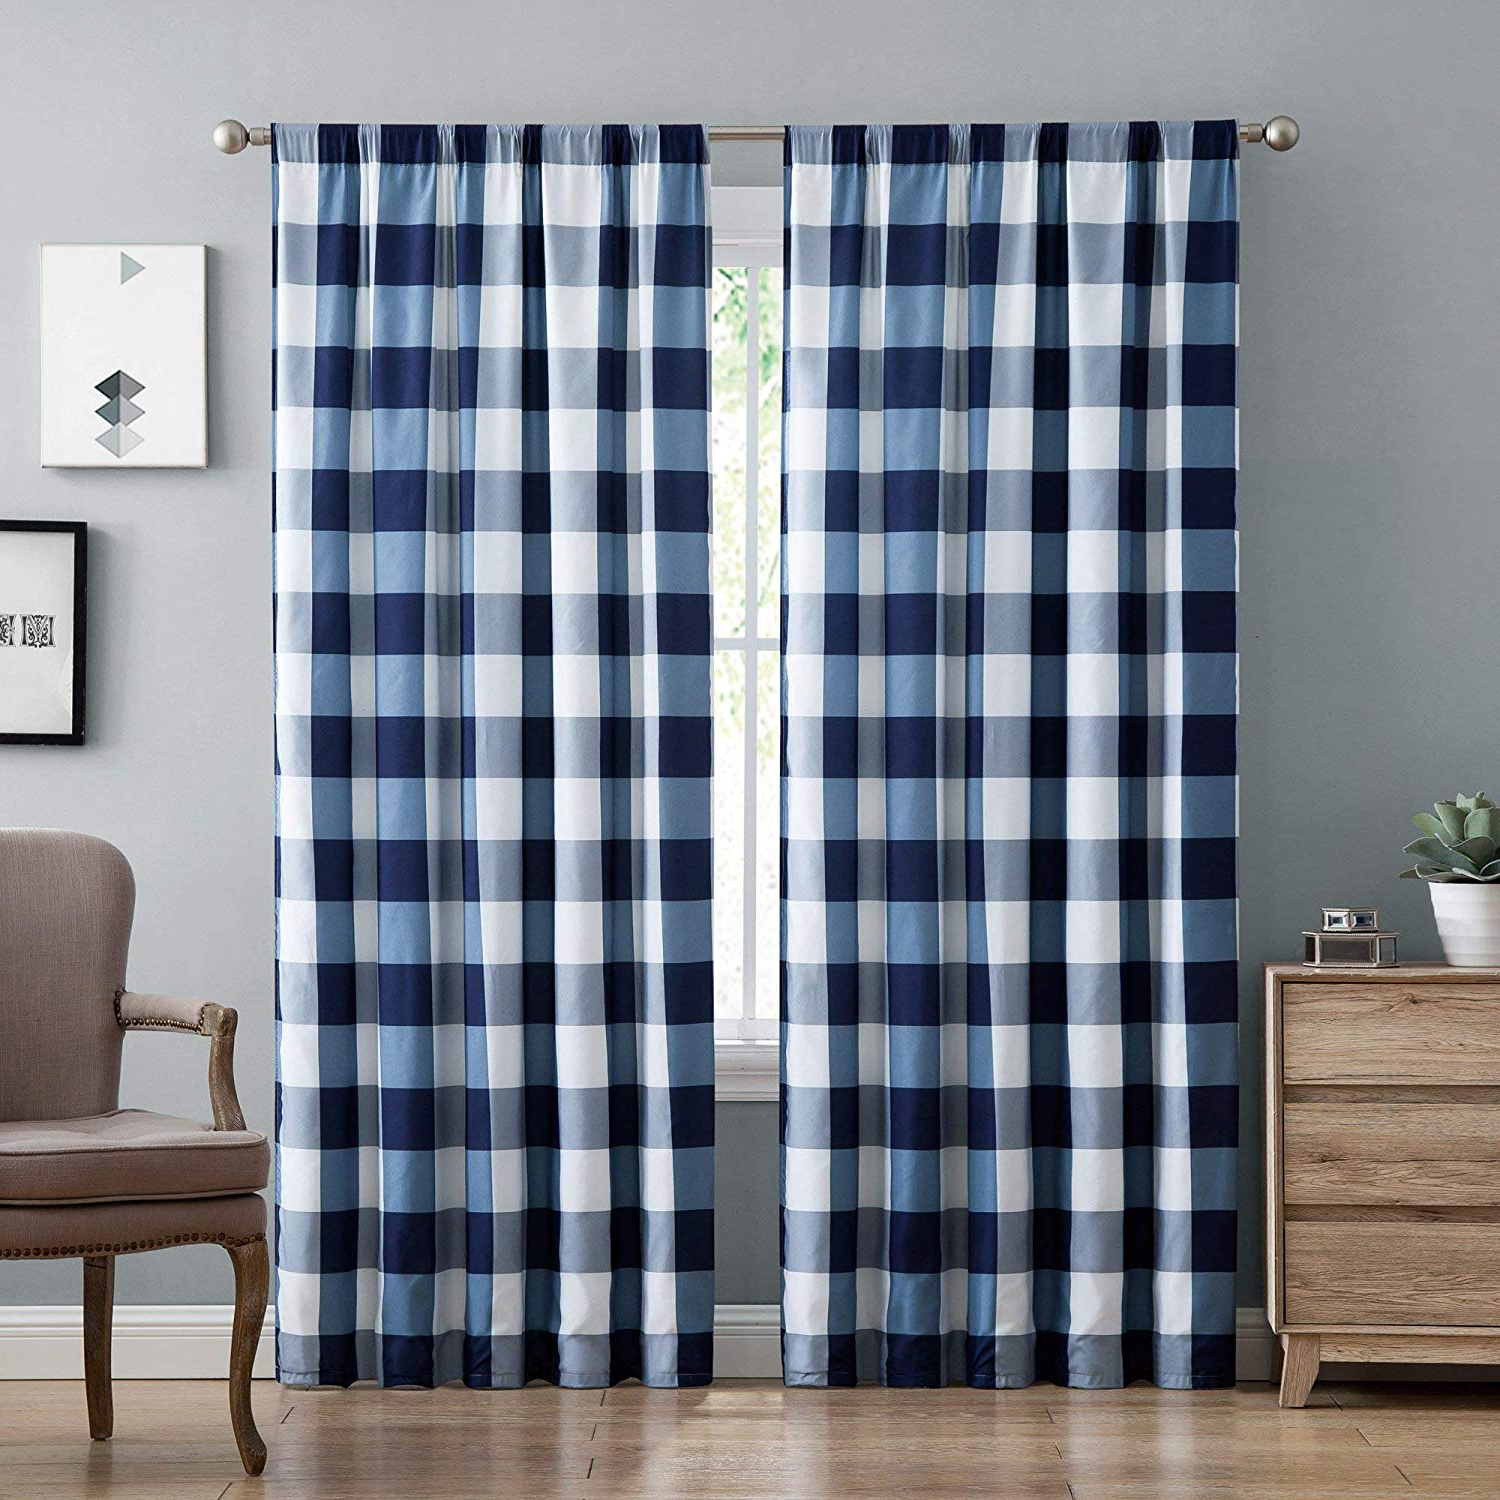 Classic Navy Cotton Blend Buffalo Check Kitchen Curtain Sets Pertaining To Latest Amazon: Misc 2 Piece Navy Buffalo Plaid Curtains, (View 10 of 20)